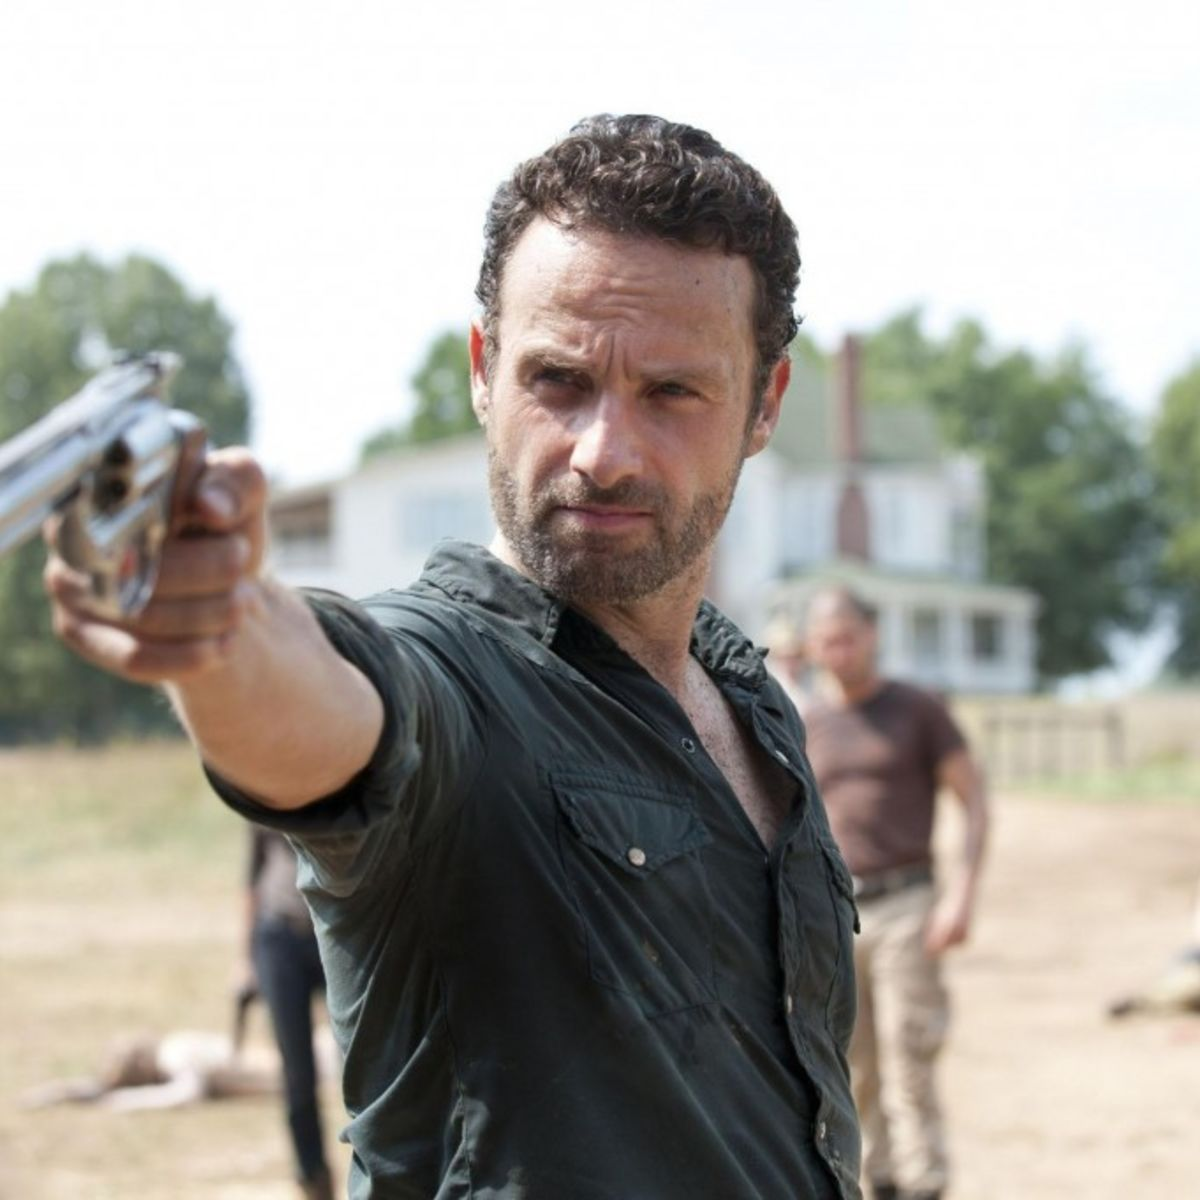 Andy-Lincoln-Rick-Grimes-1024x681.jpg